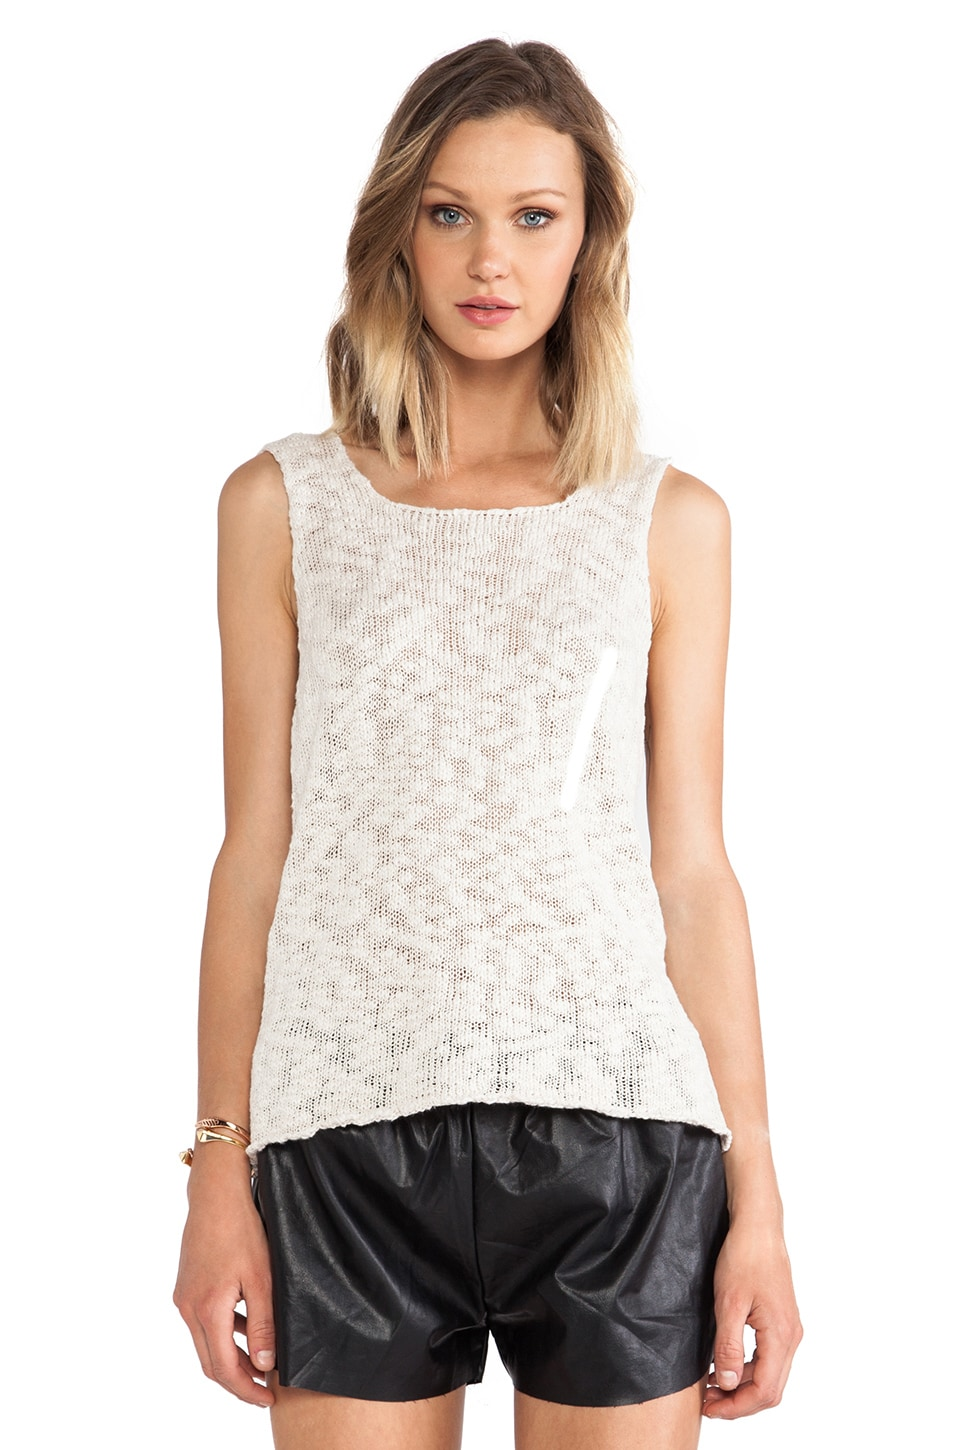 ANINE BING Knitted Tank Top in Ivory